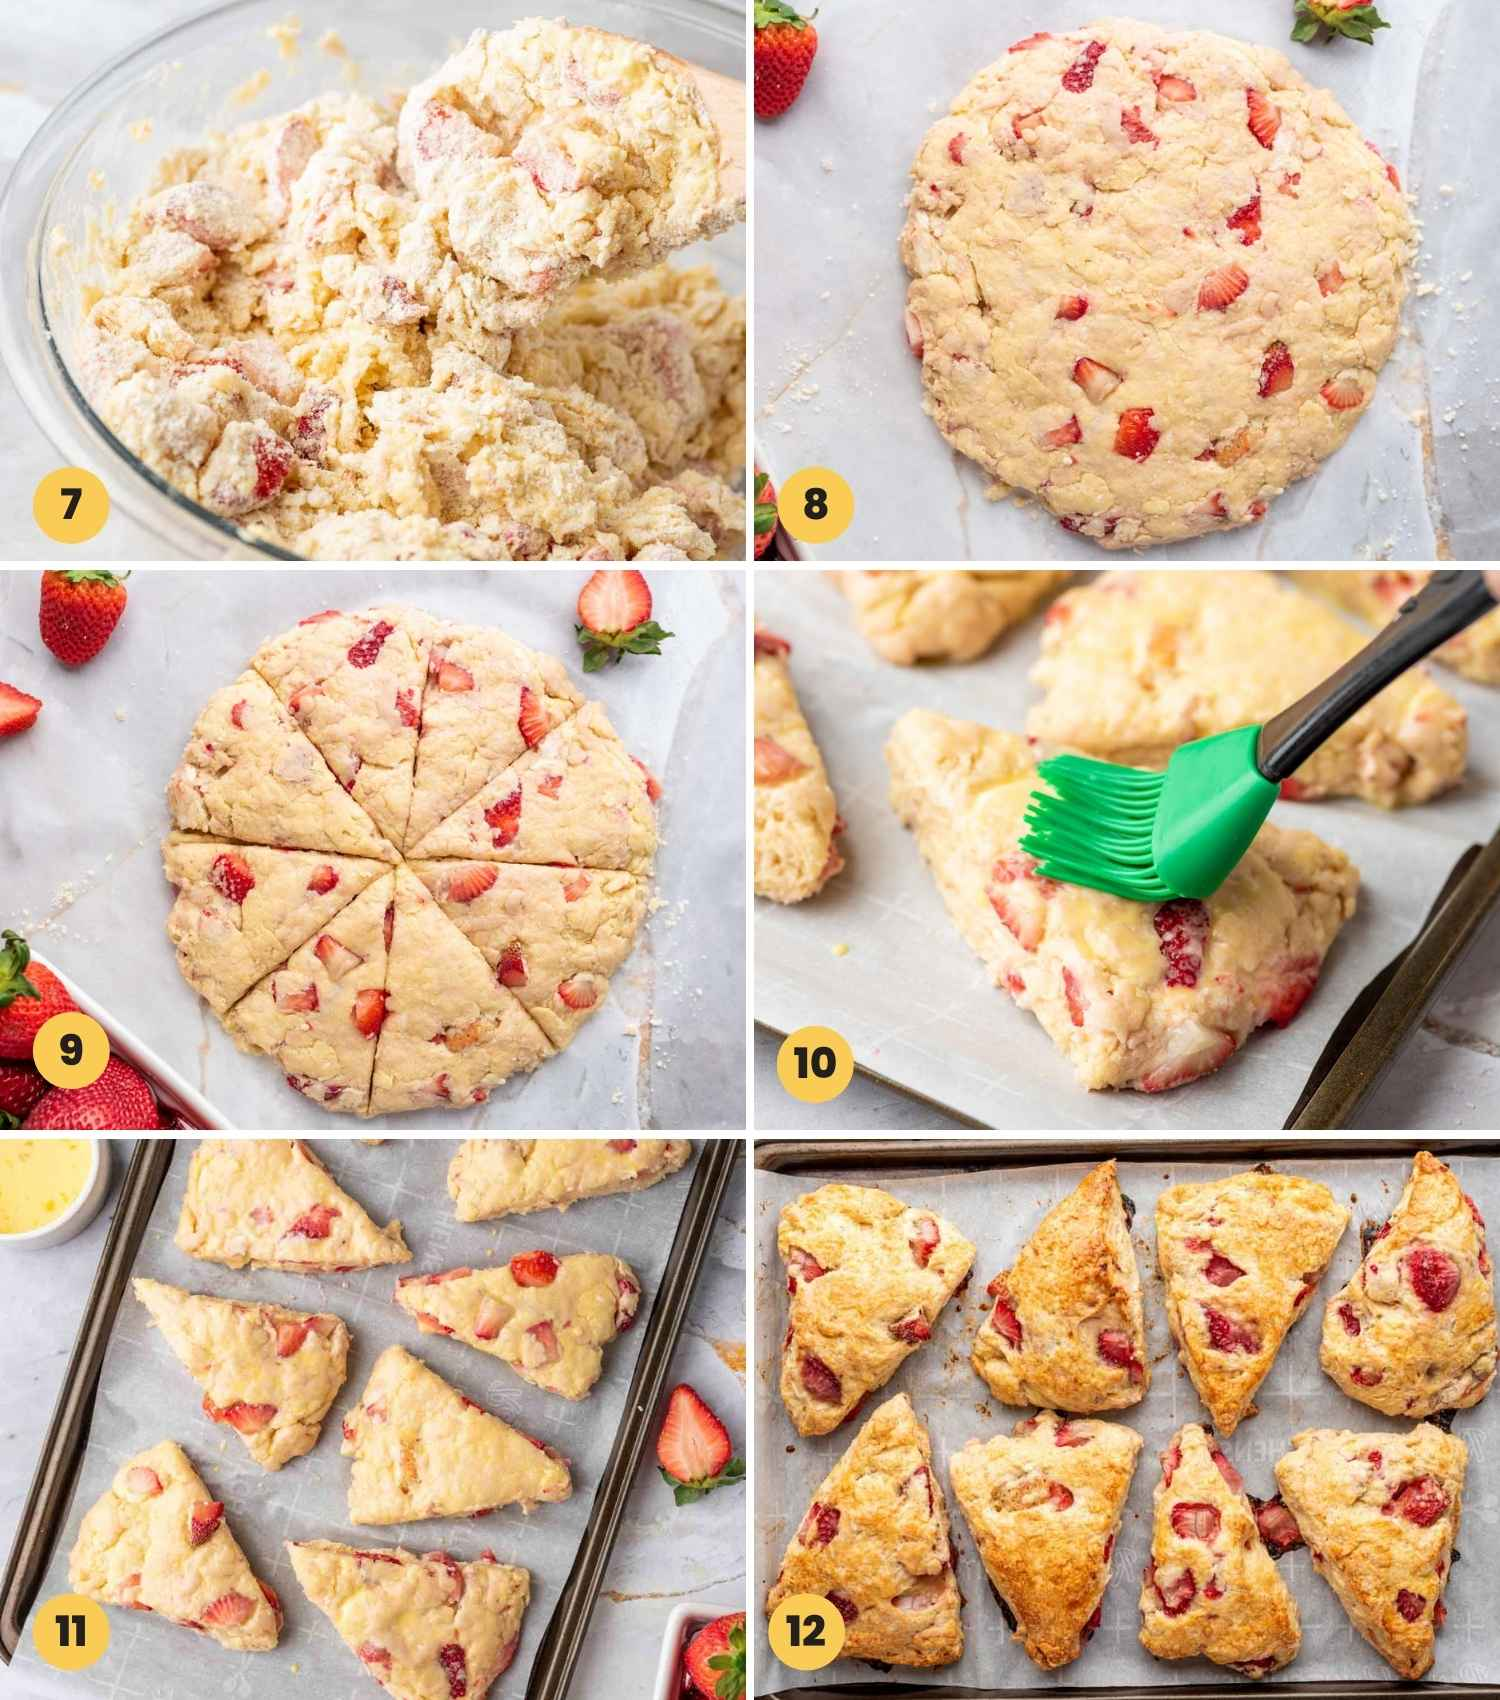 A collage with 6 images showing how to make strawberry scones from scratch